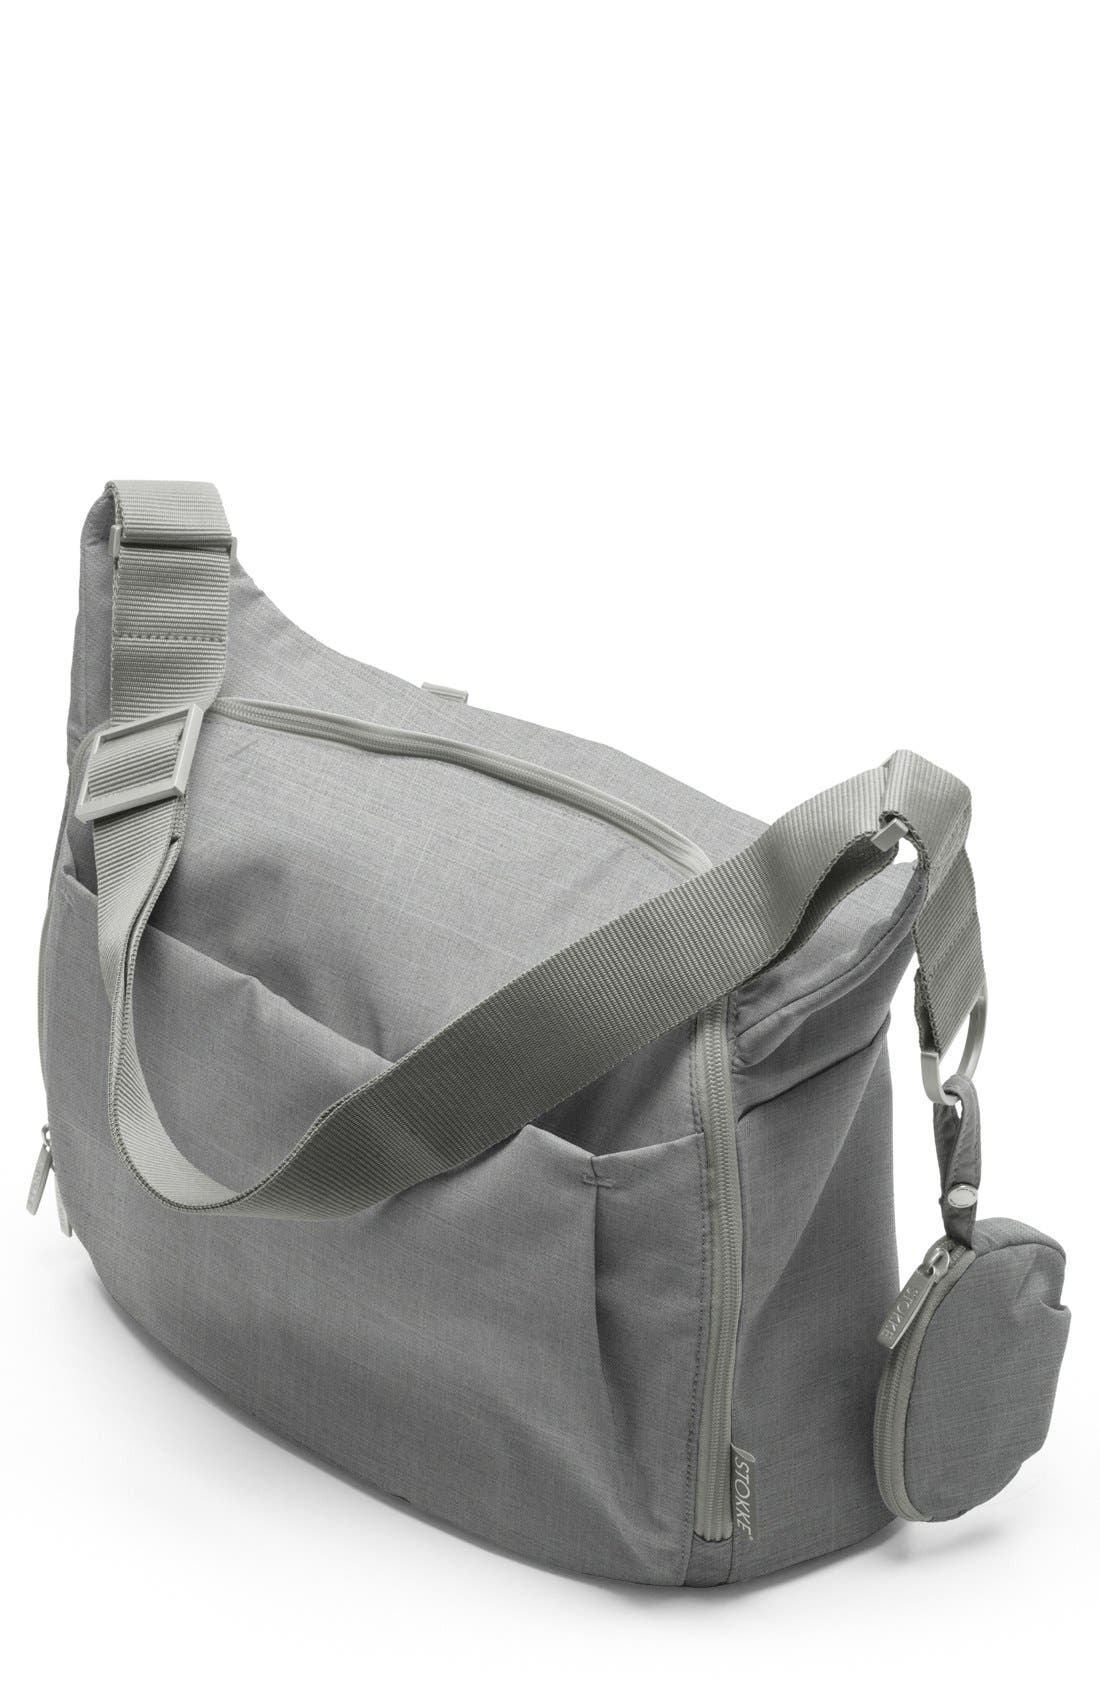 Alternate Image 1 Selected - Stokke Baby 'Xplory®' Changing Bag